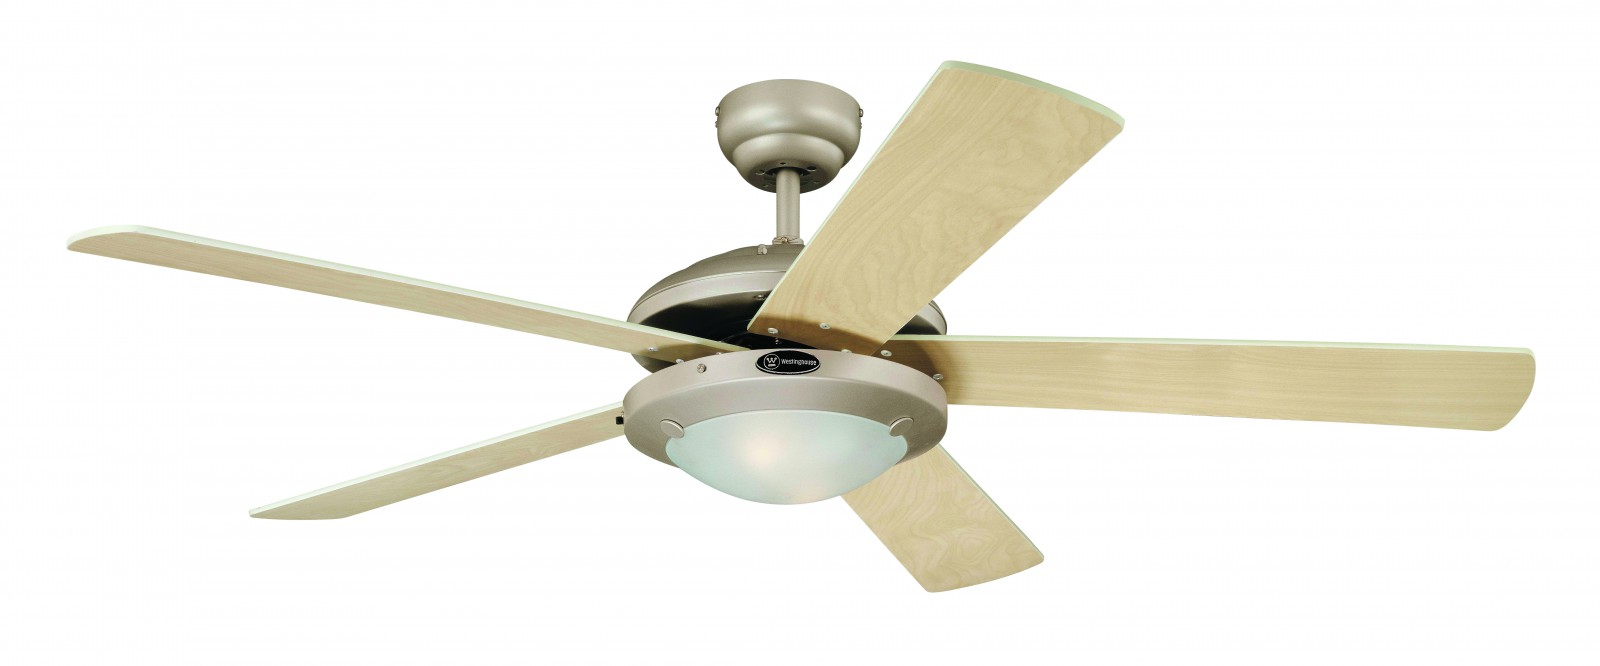 Westinghouse Ceiling Fan Comet 132 Cm 52 With Lighting